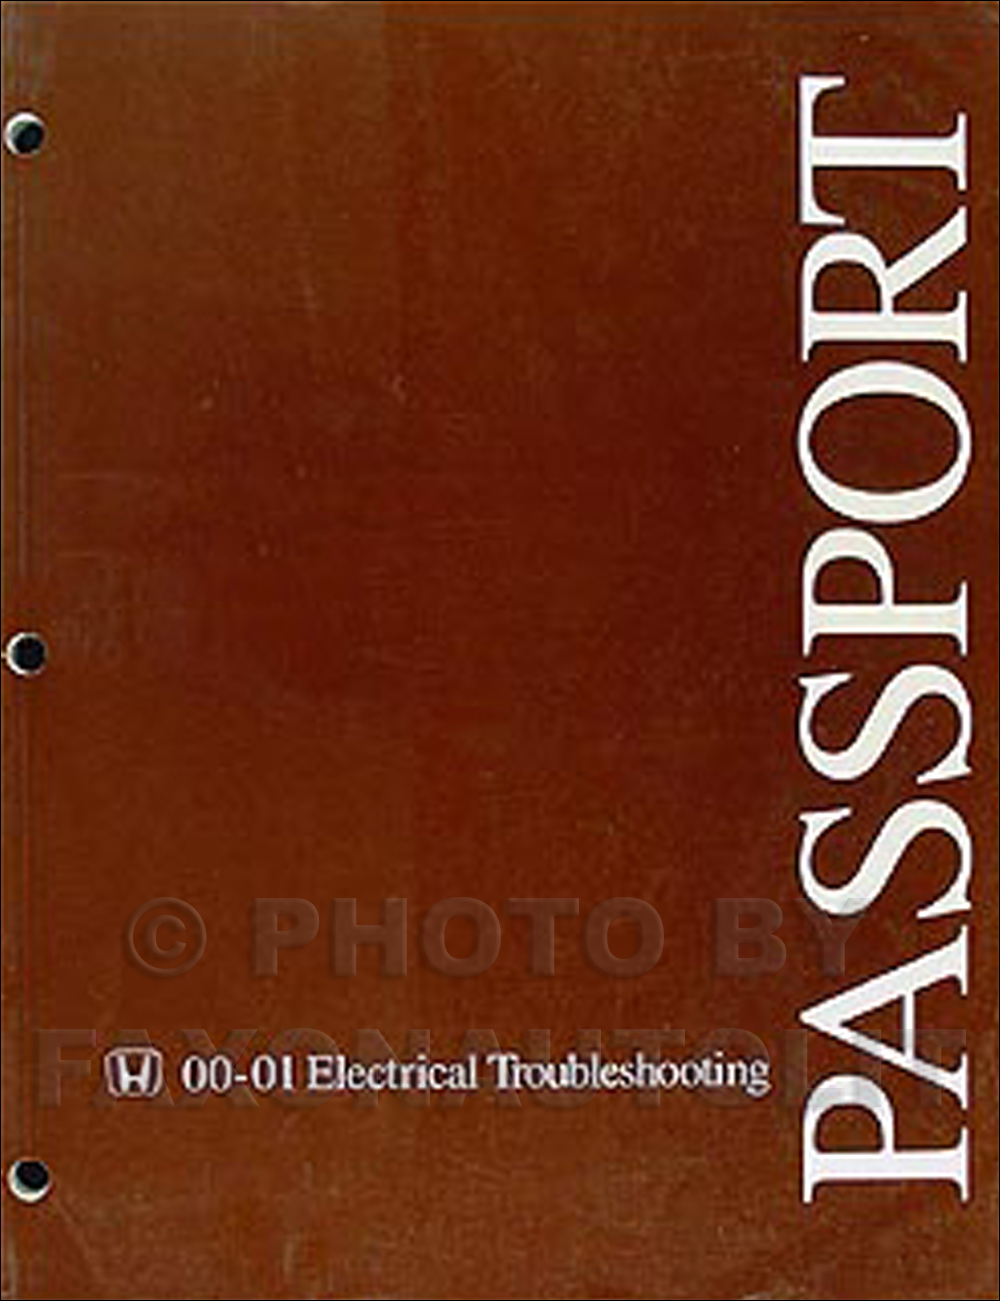 2000 2001 honda passport electrical troubleshooting manual wiring rh ebay com 1998 honda passport wiring diagram 1999 honda passport wiring diagram